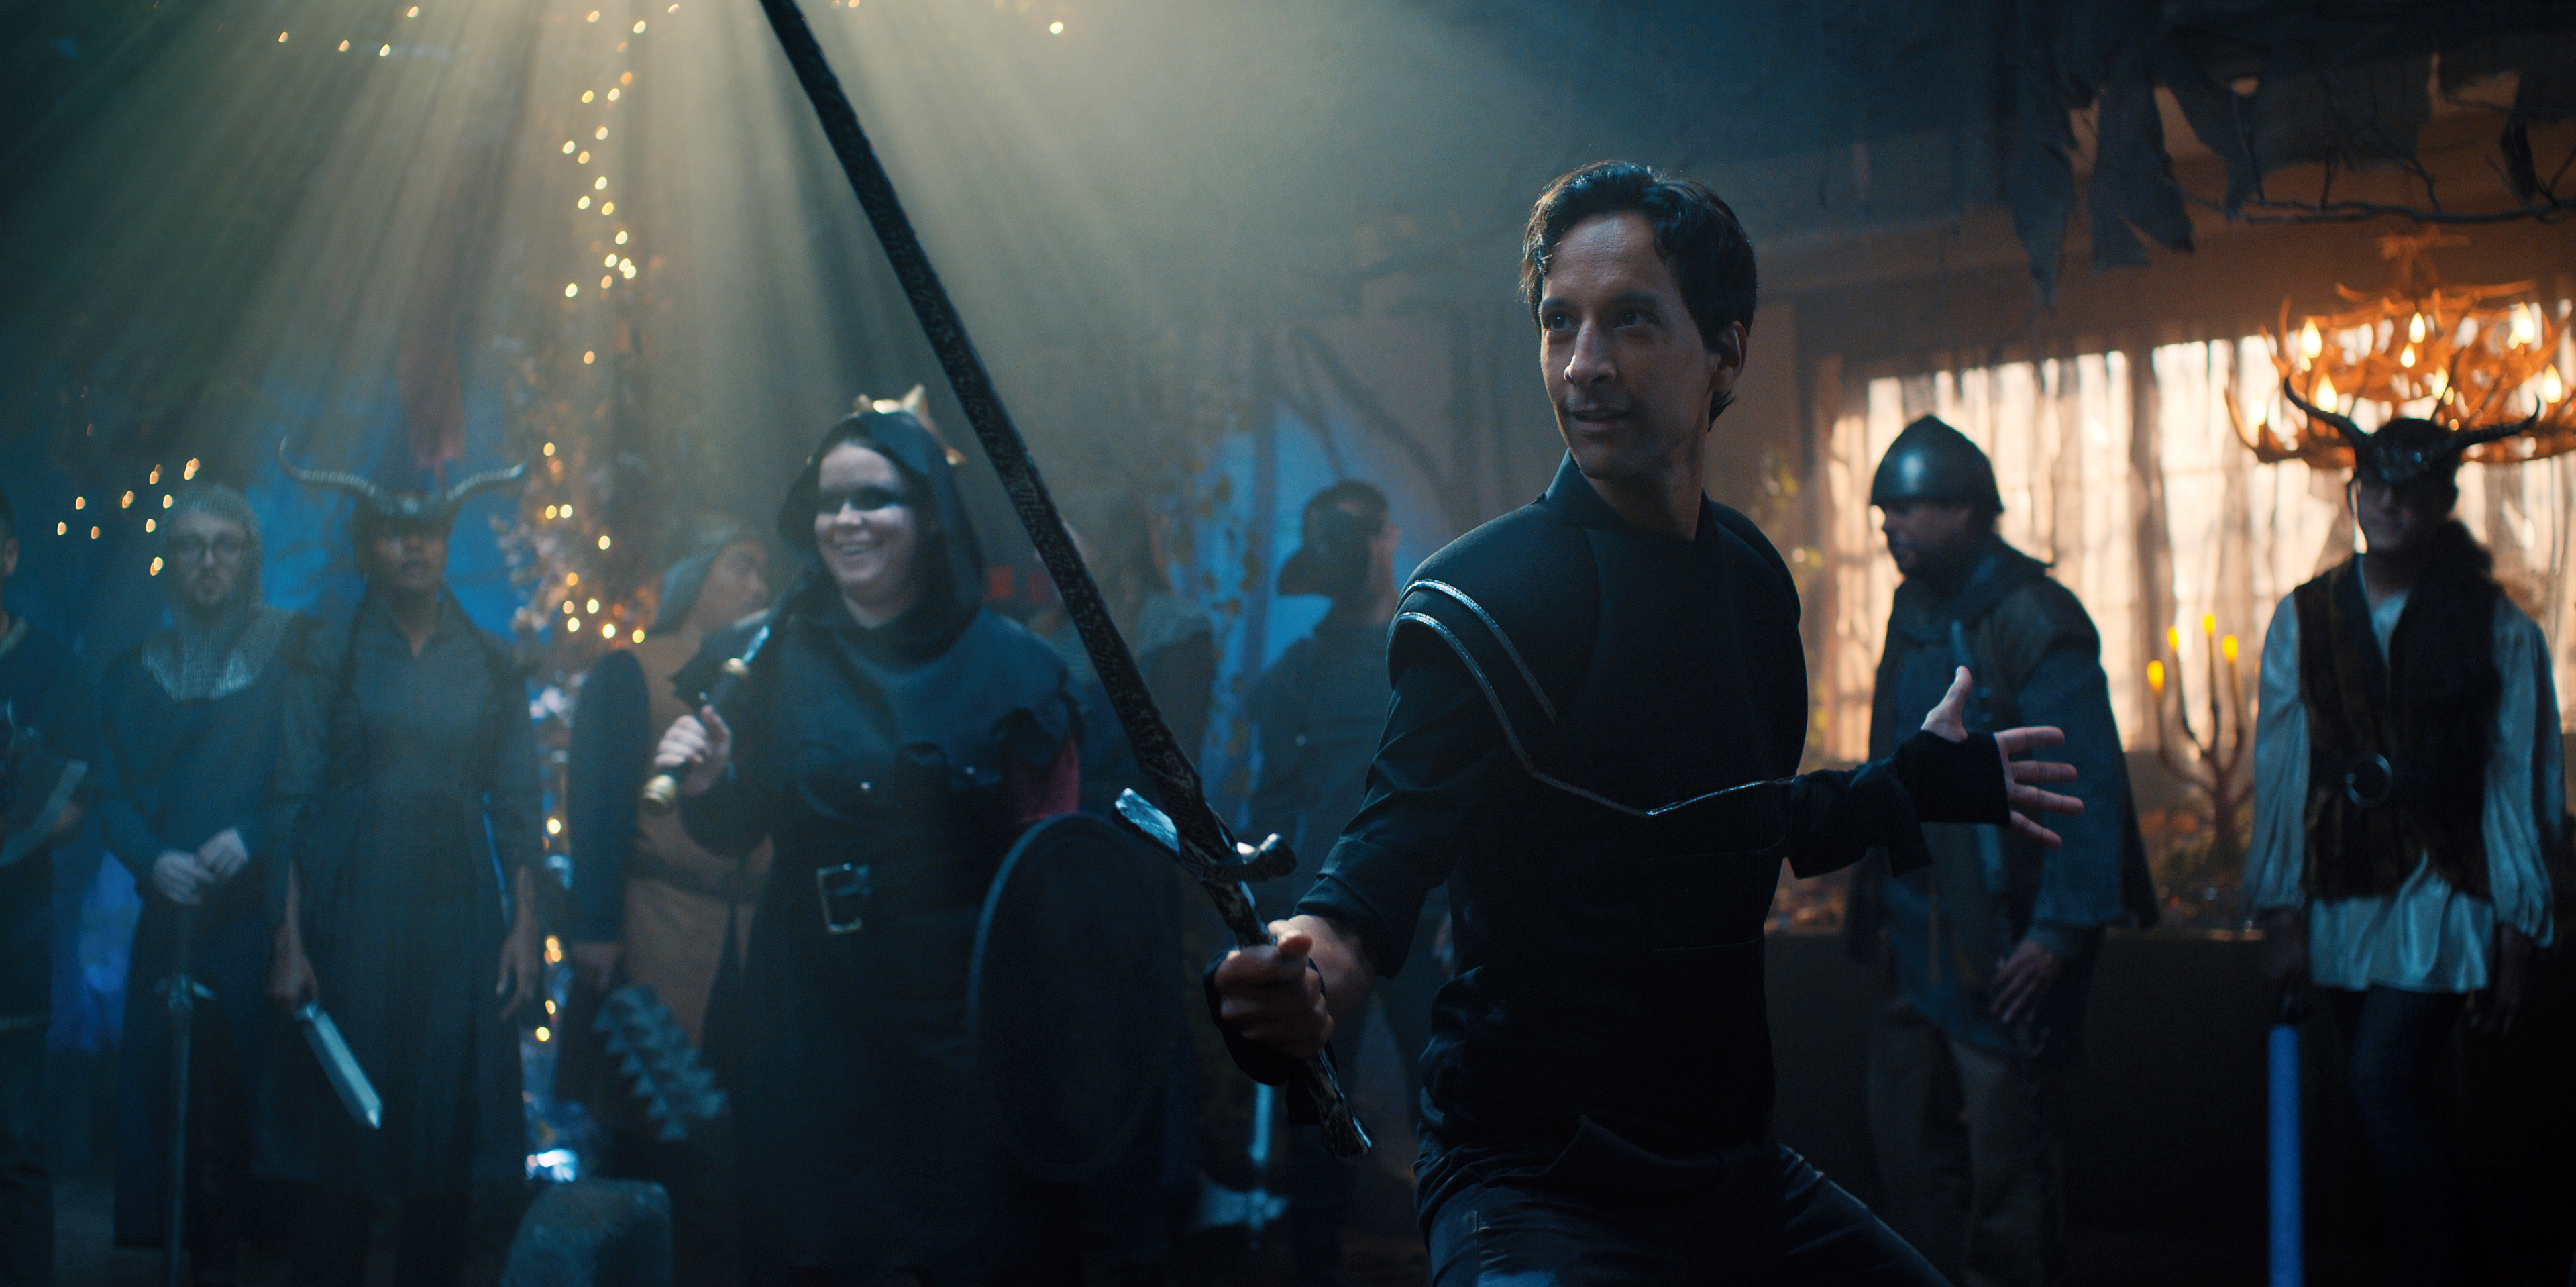 Brad Bakshi, played by Danny Pudi, strikes a pose in a swordsman costume.